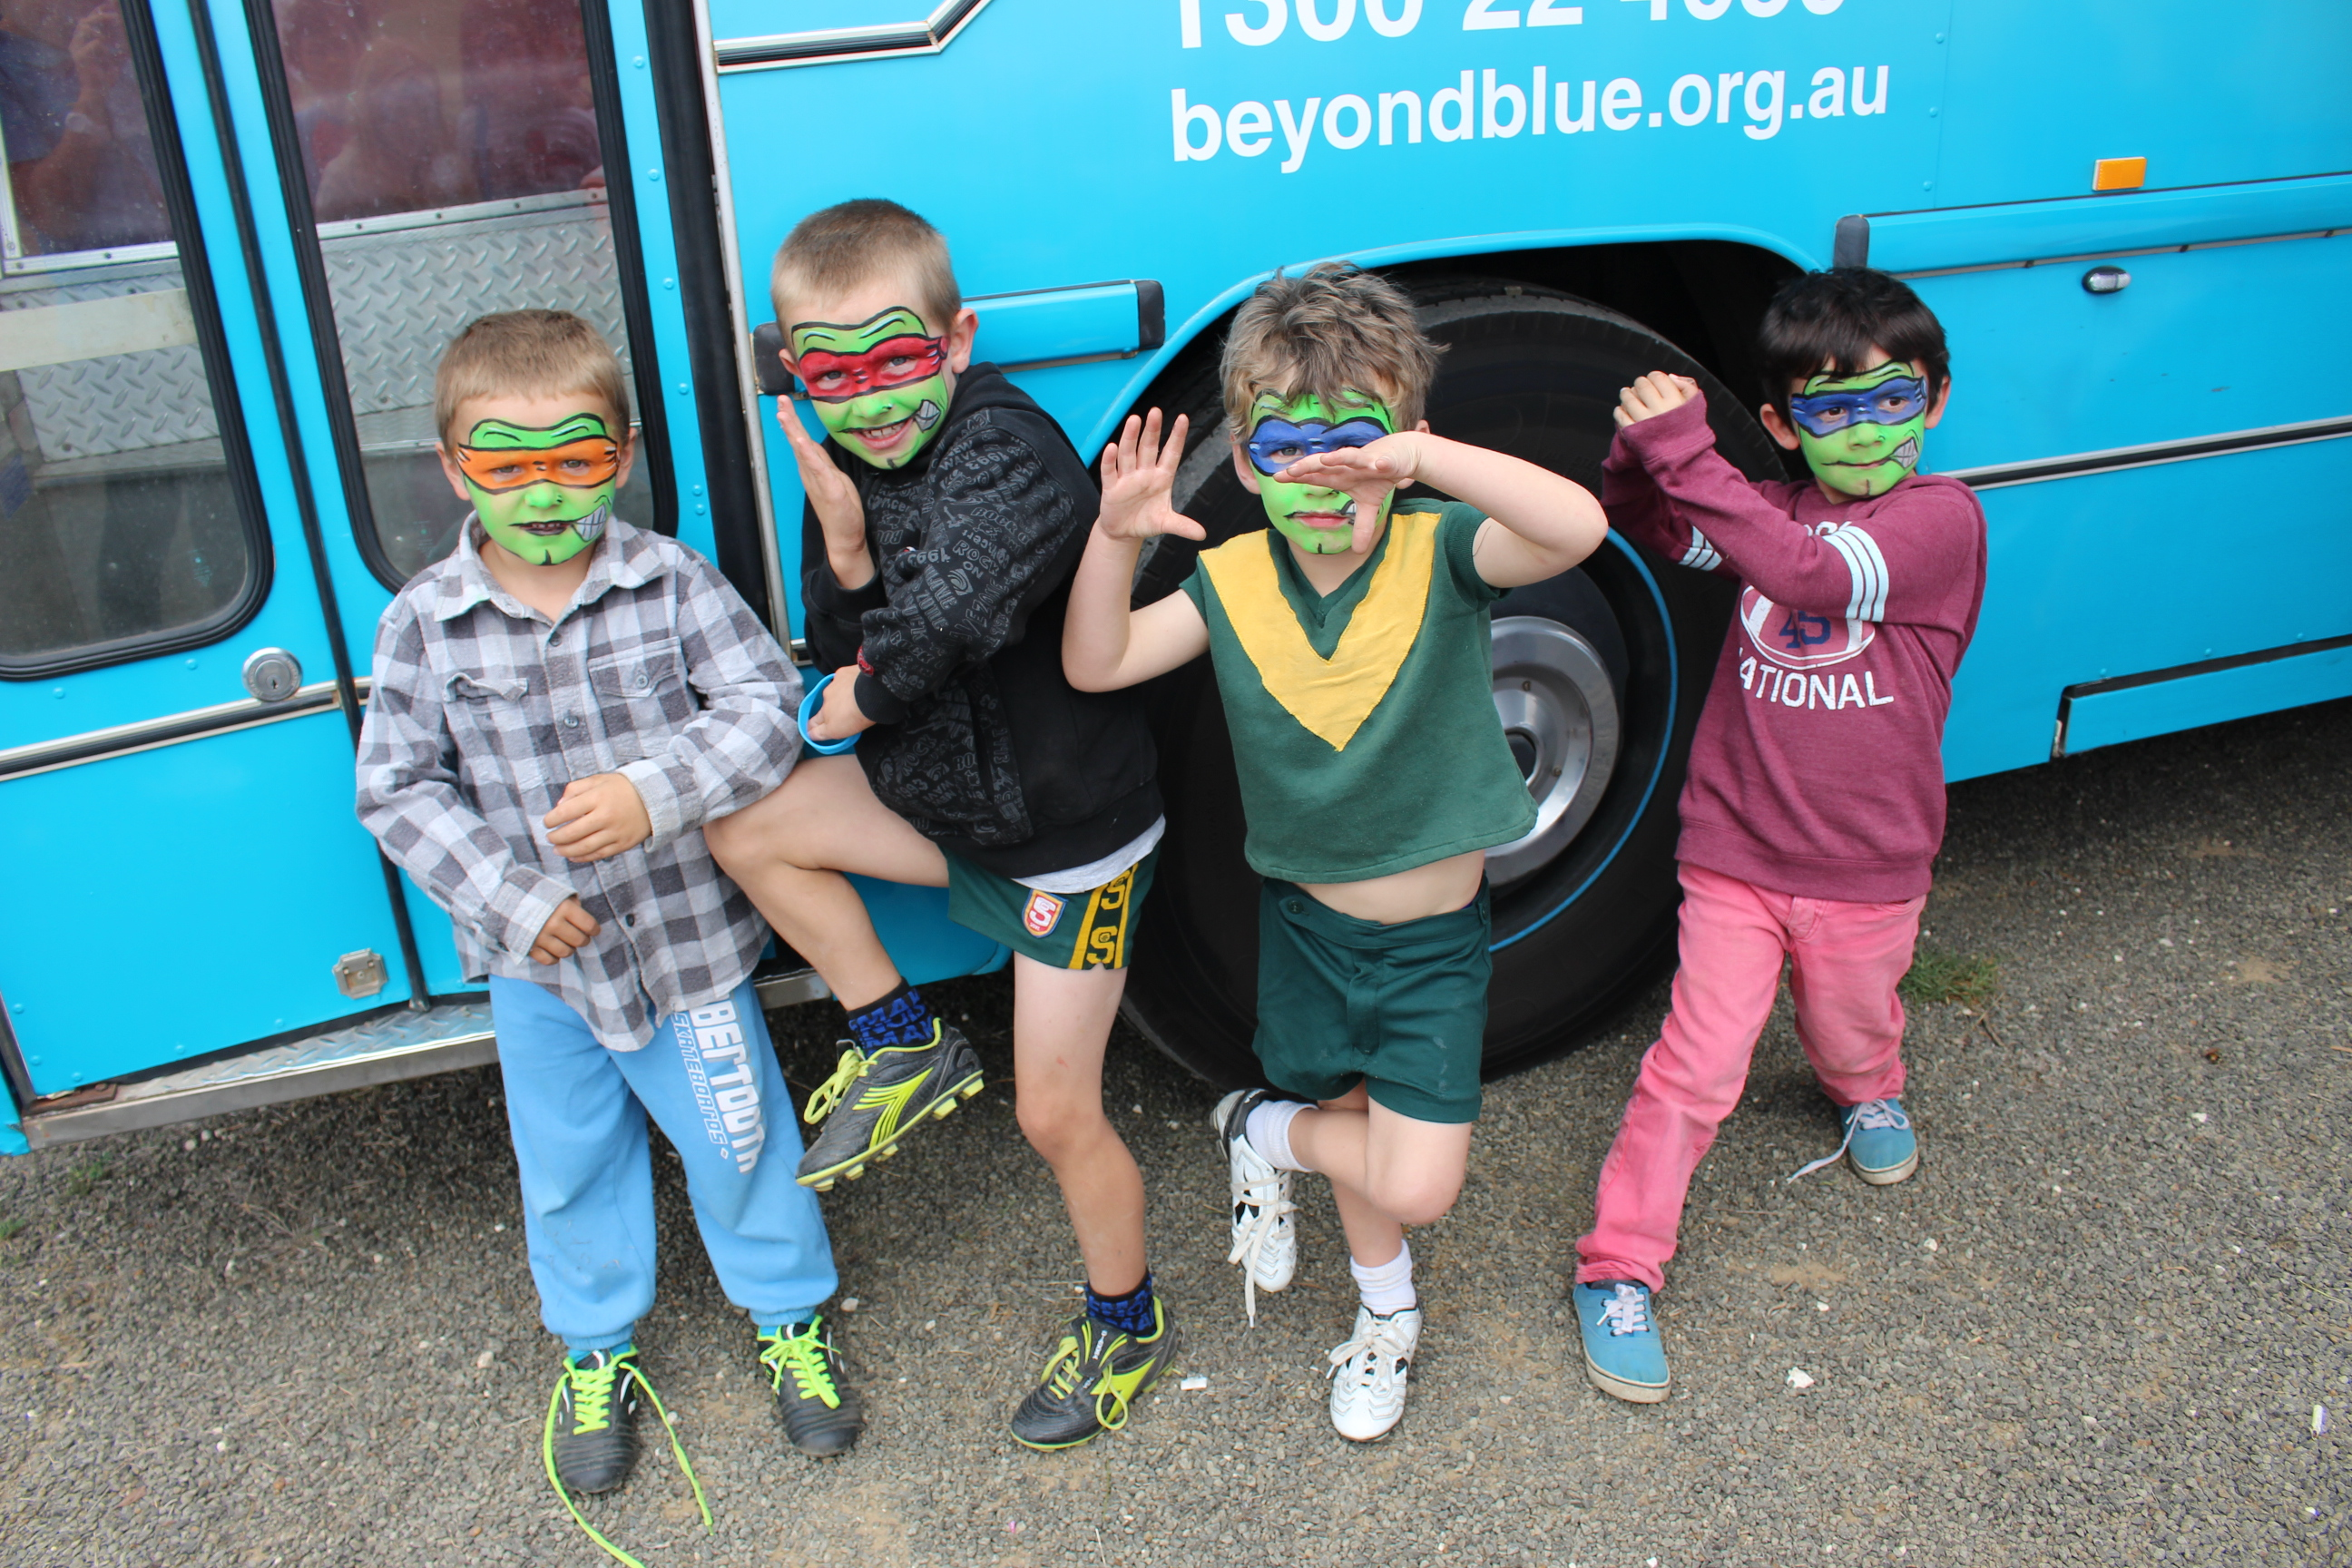 Ninja Turtles have relocated to Kangaroo Island!